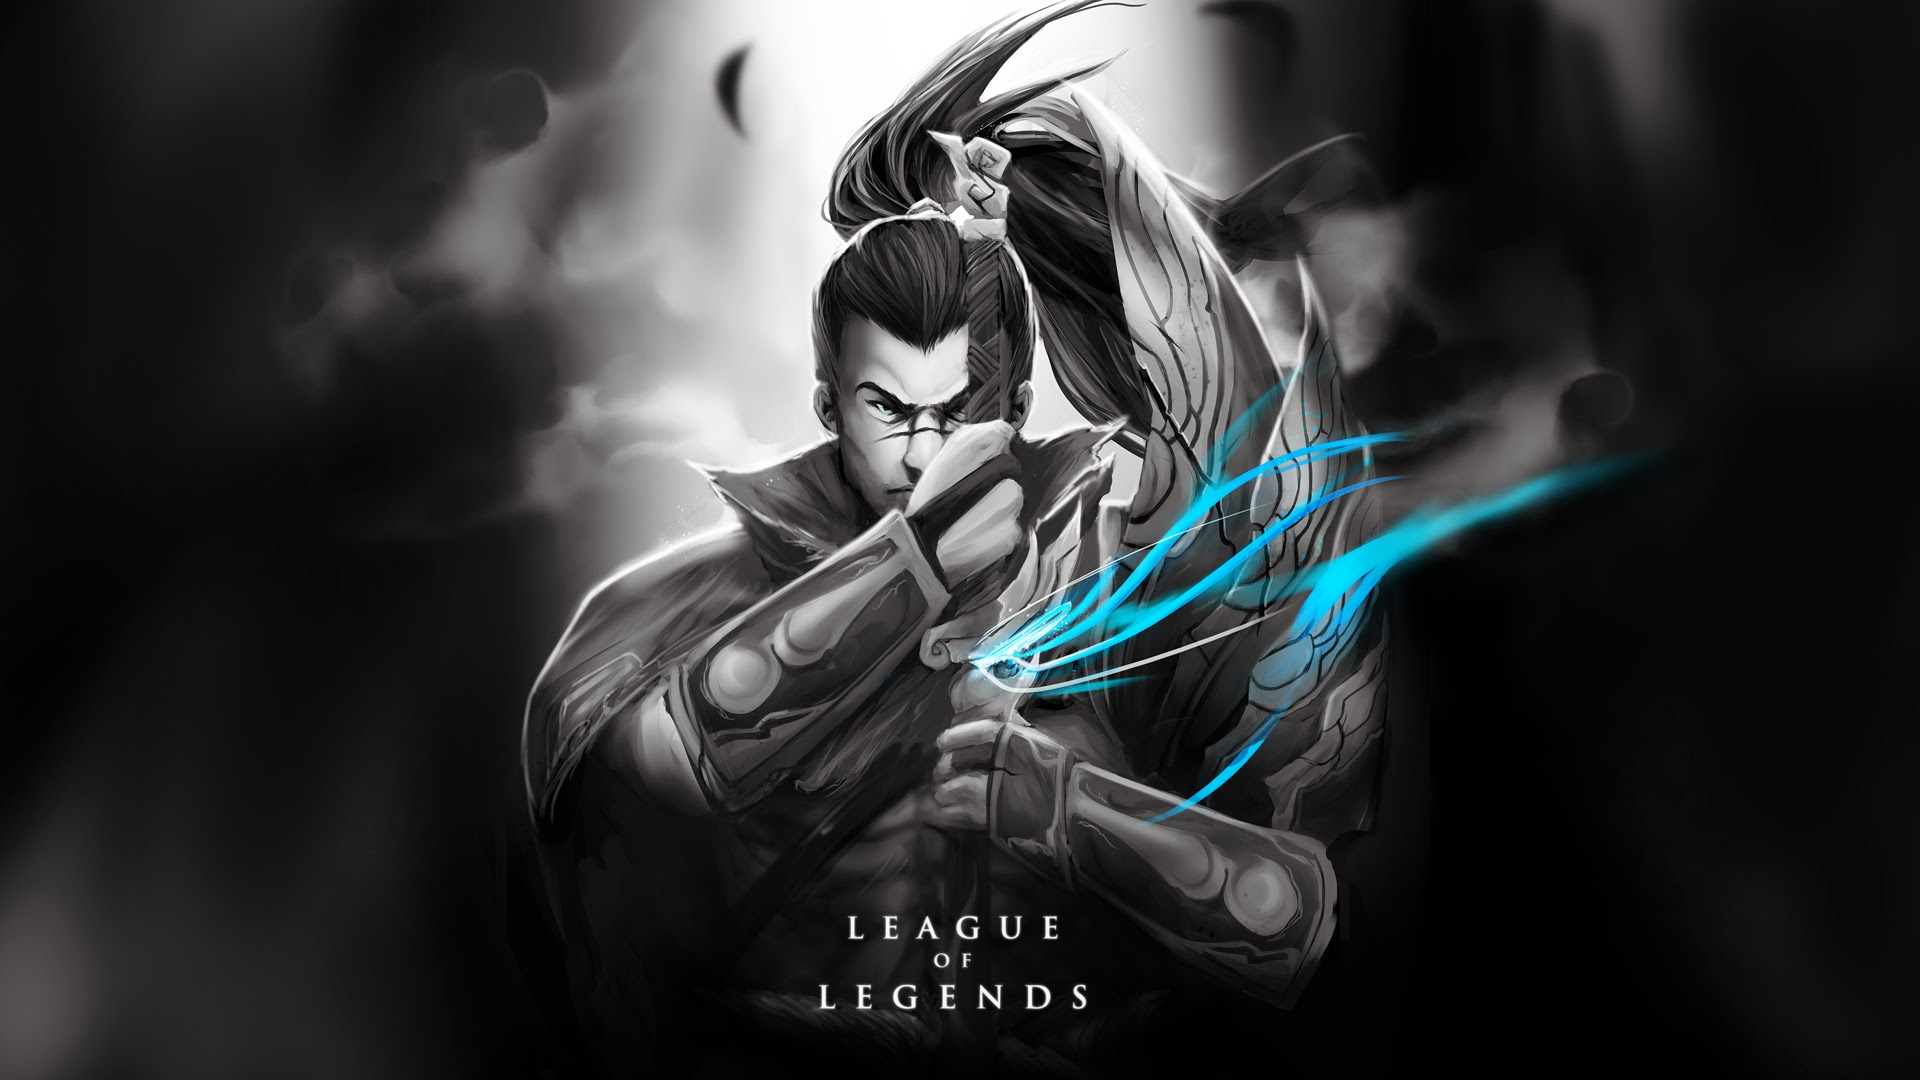 Free Download Yasuo League Of Legends Hd Wallpaper Lol